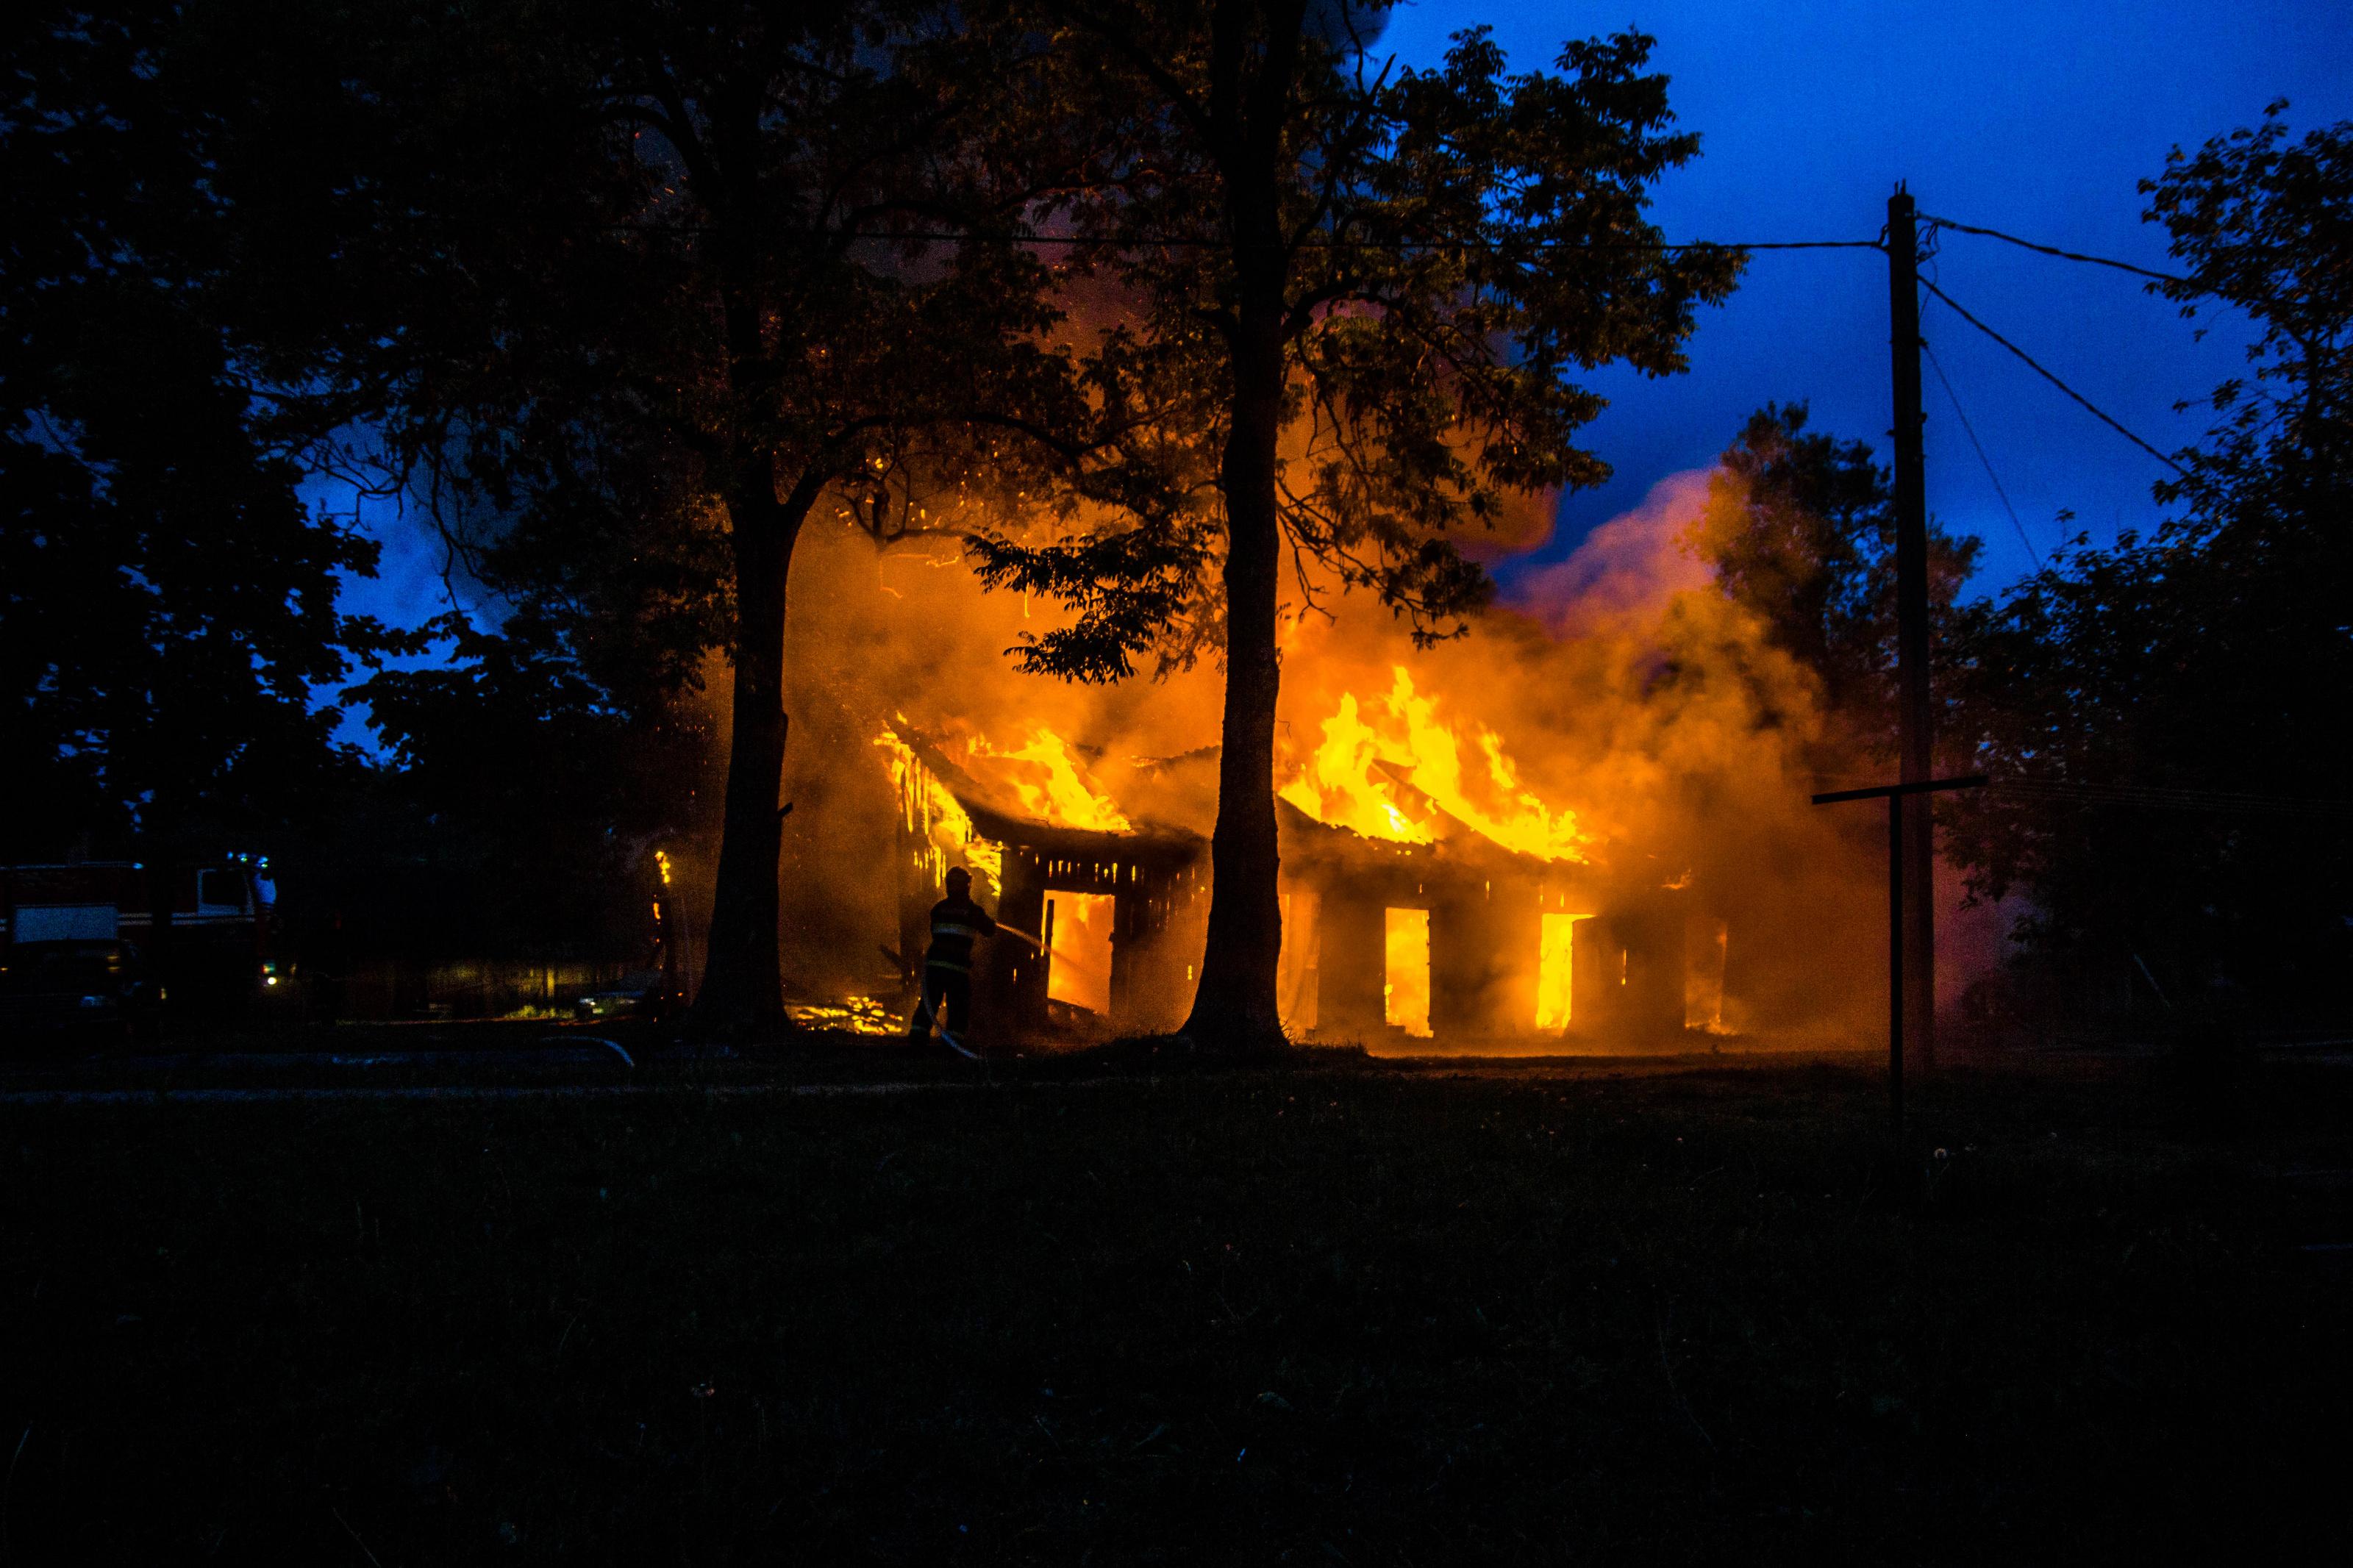 Natural disaster, fire of a wooden house in the forest. Firefighters extinguish the flame.